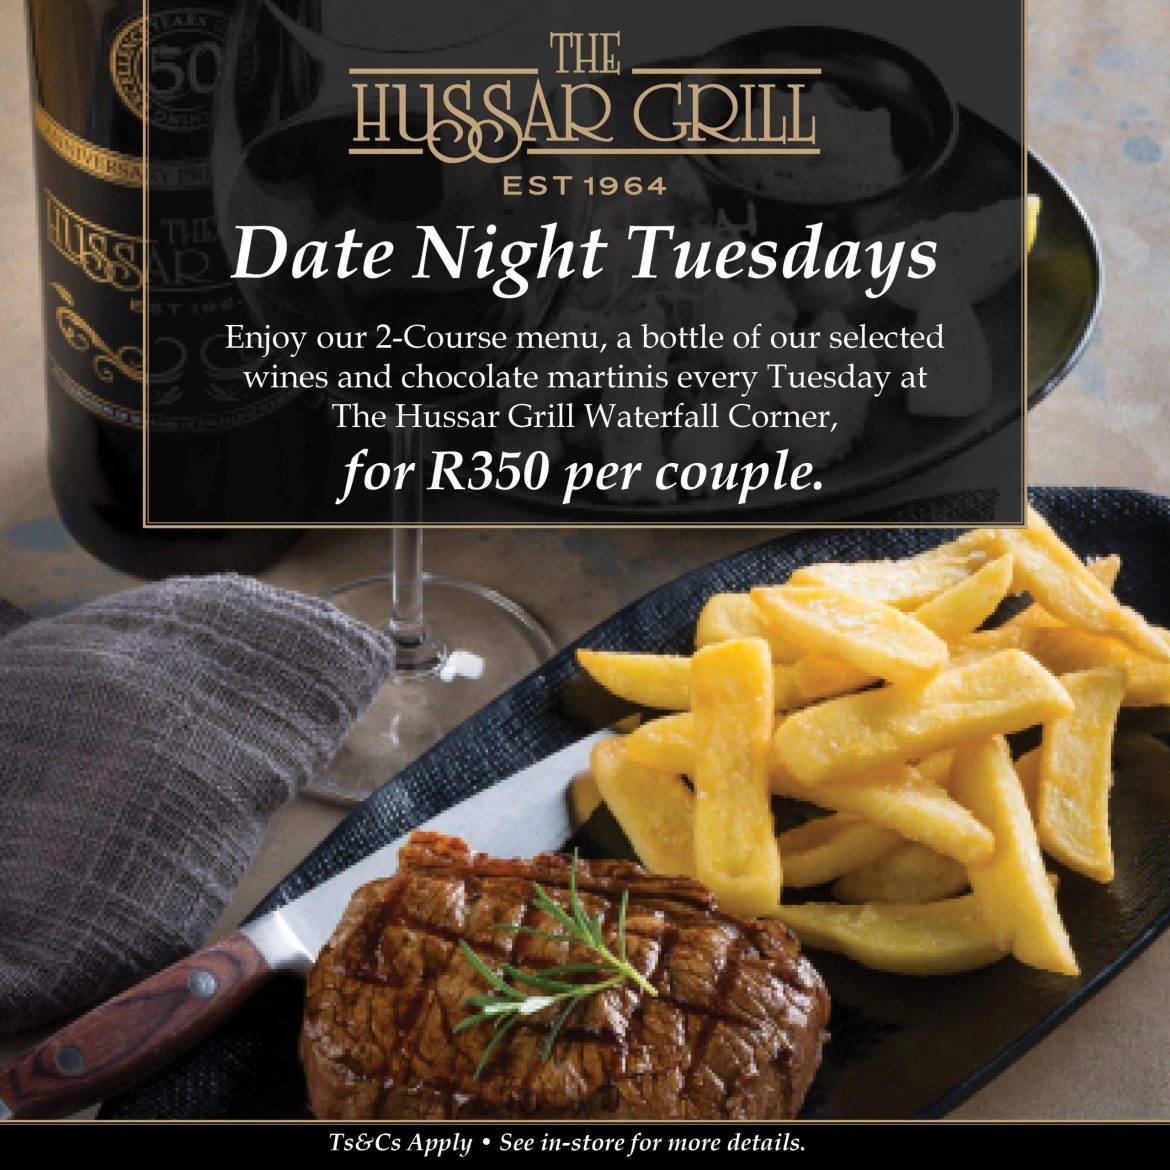 Hussar Grill Tuesday Date NIght DineJoziStyle Edward Chamberlain-Bell (2)